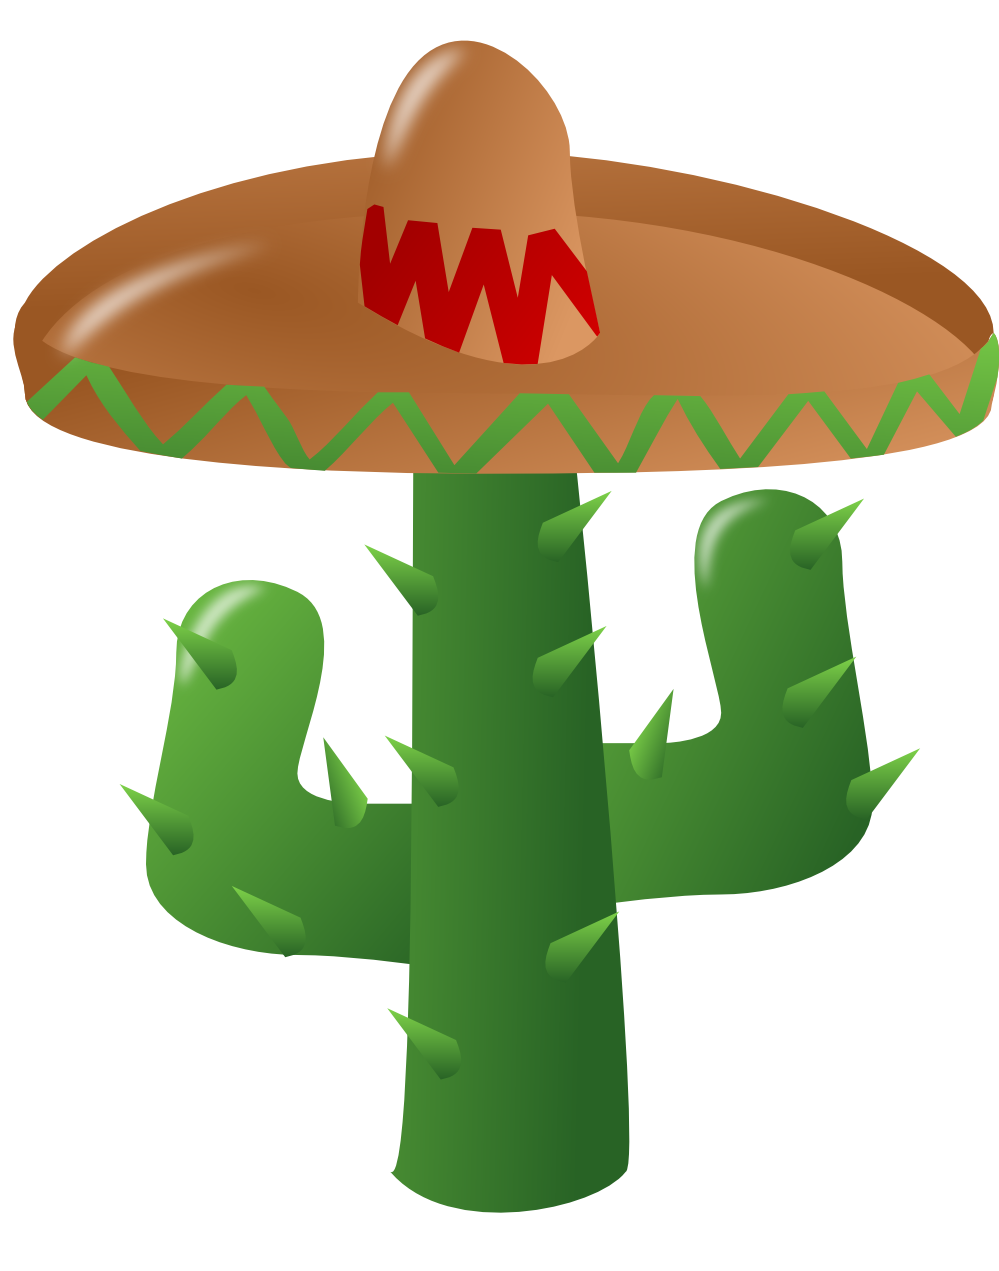 Cinco de mayo me. Peppers clipart fiesta